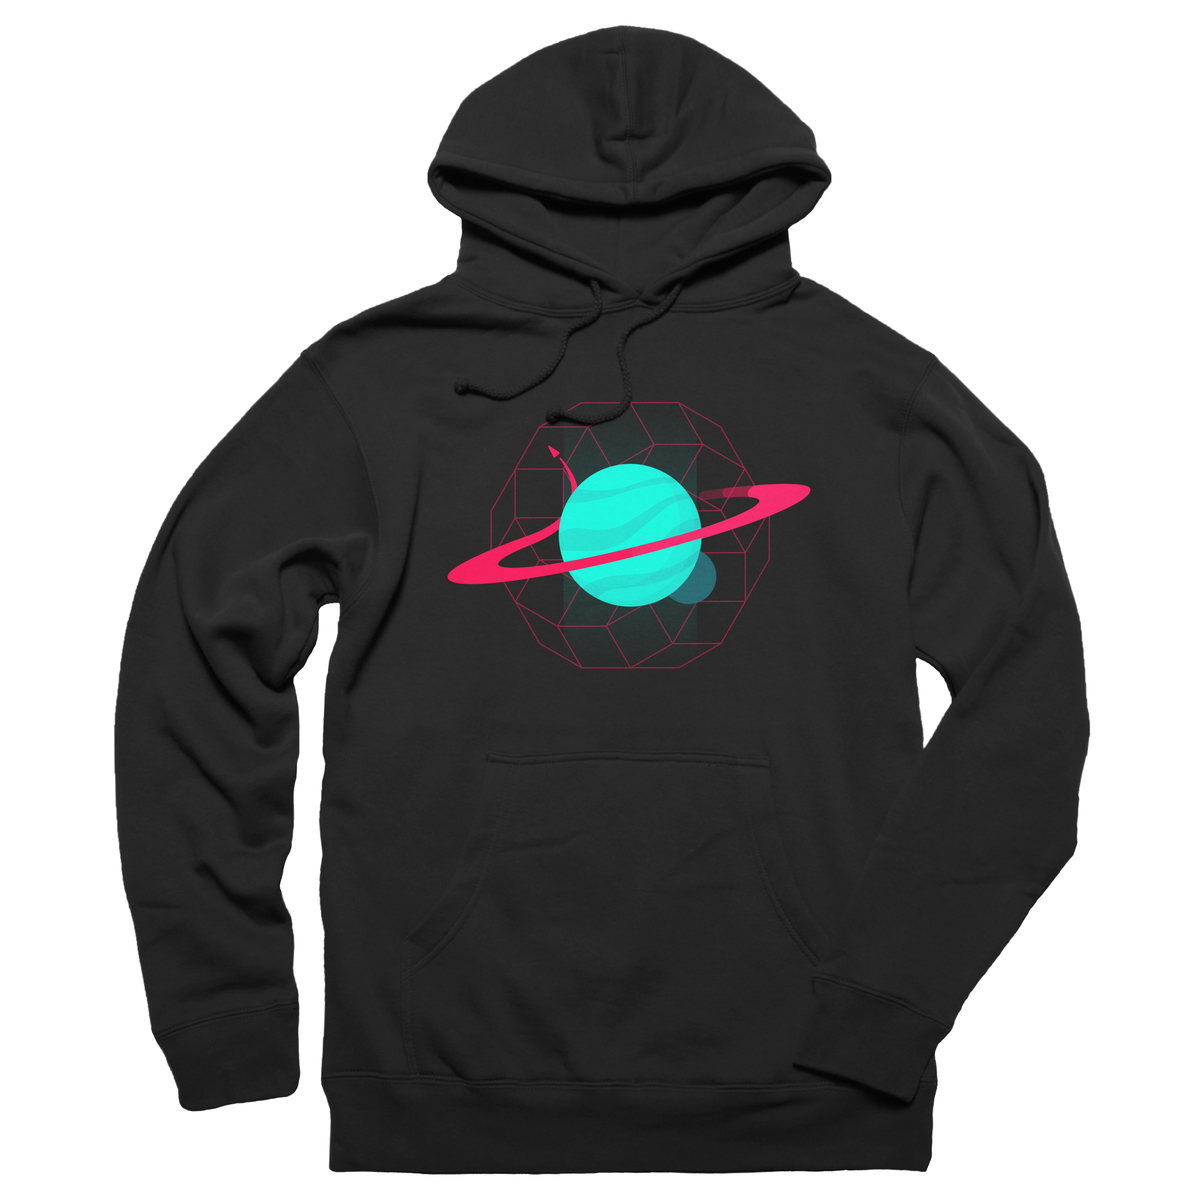 "Orbit"" graphic tee, pullover hoodie, and tank by Harry Stay"